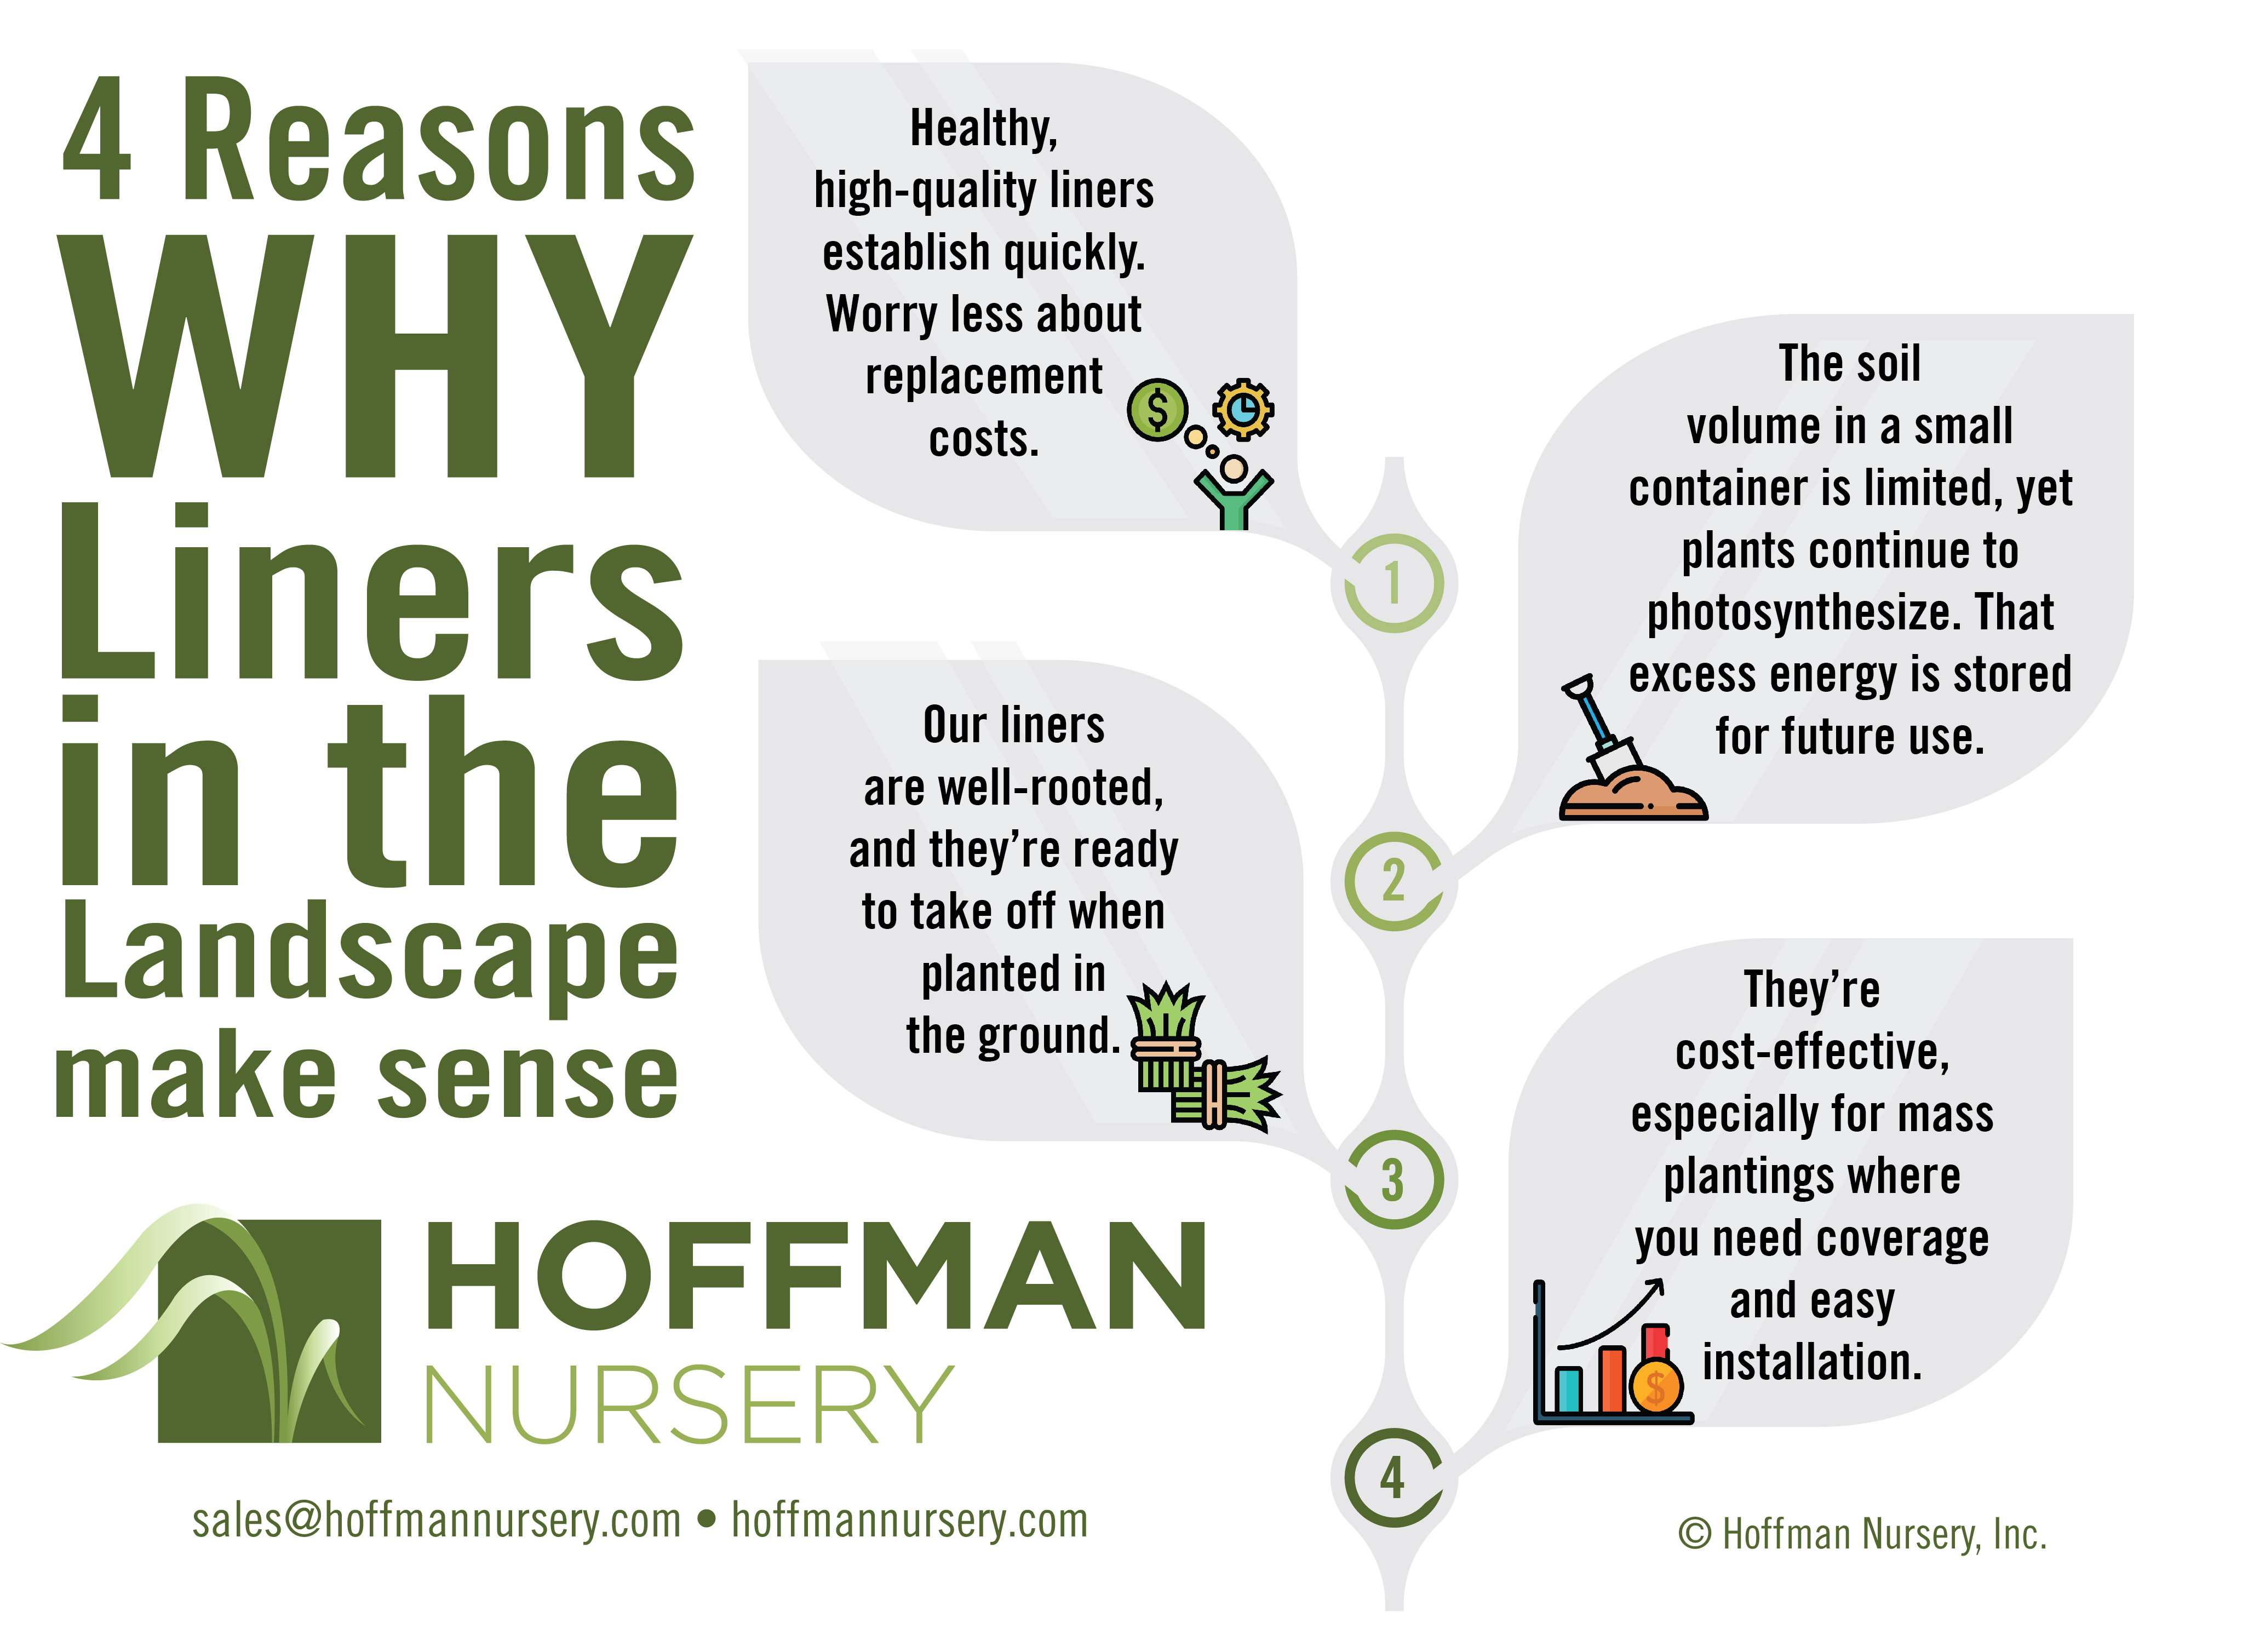 If You Re Going With Liners It Also Makes Sense To Get Them From Hoffman Nursery The Value Us Stands Out In Trade